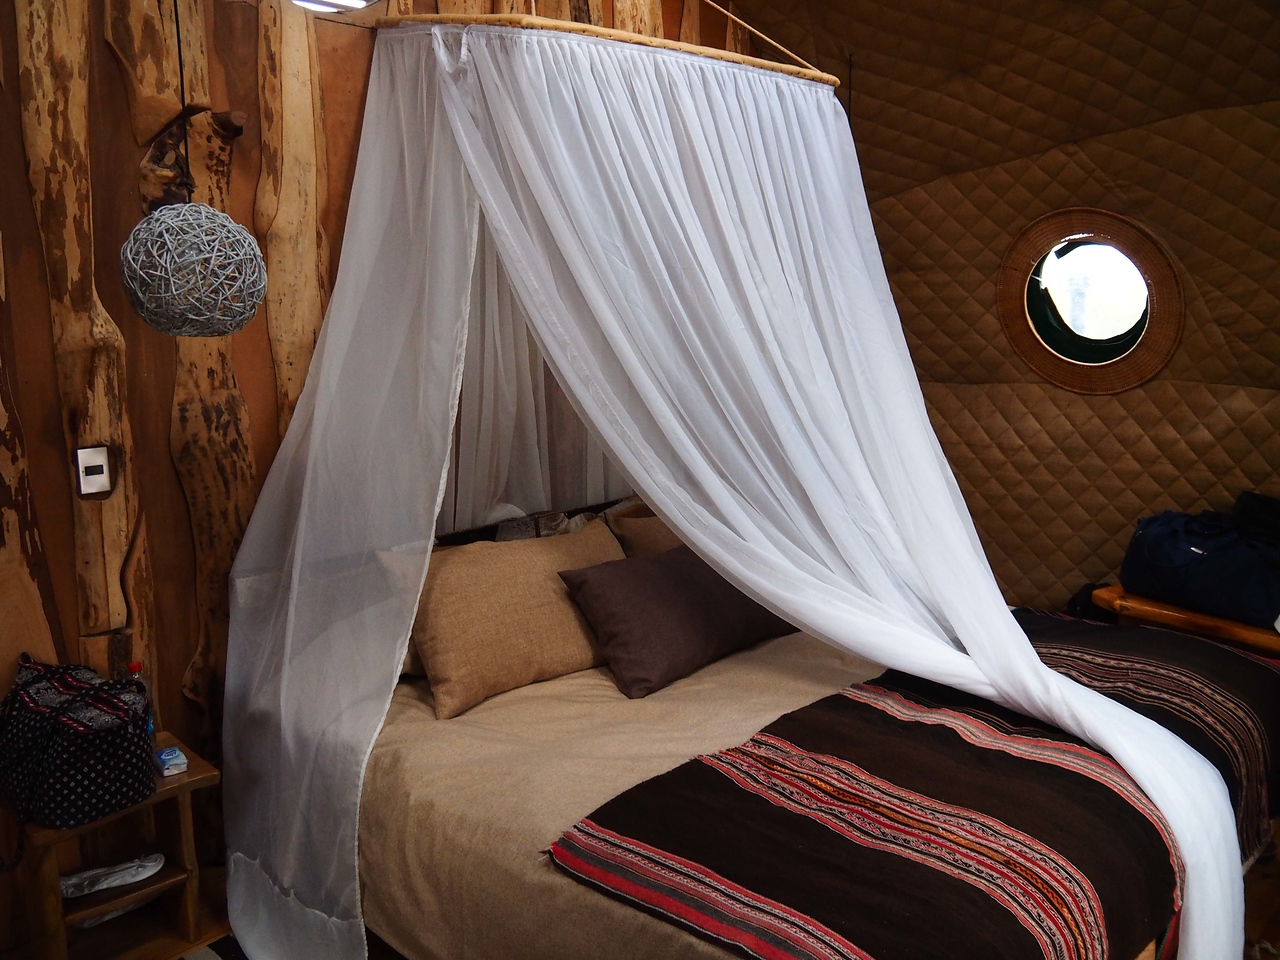 Bed with mosquito netting